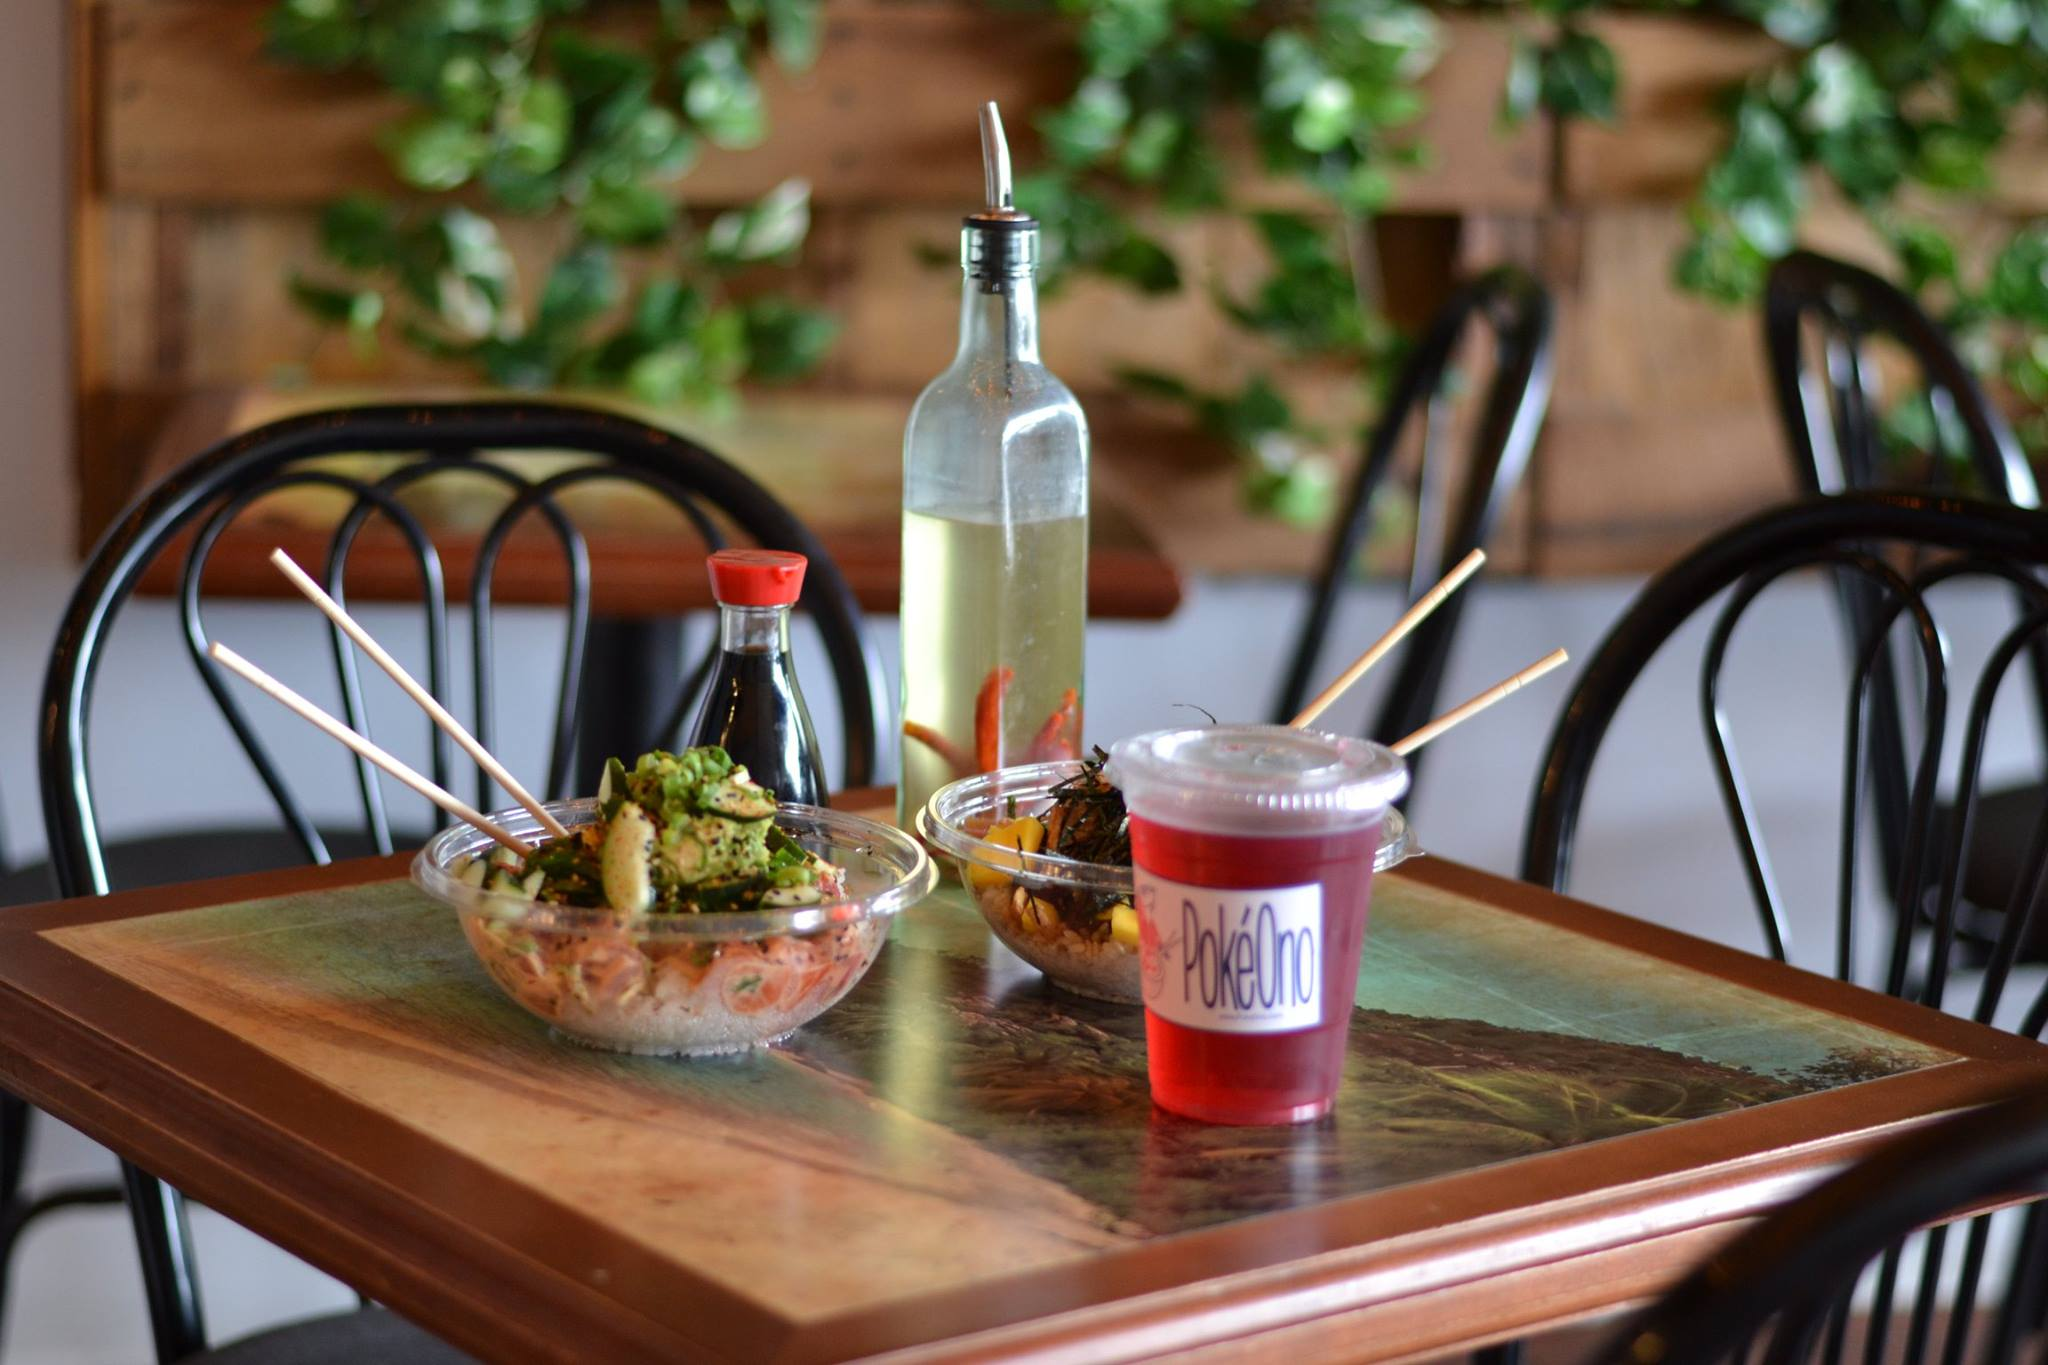 Ardmore-Based Poke Space Expands Again